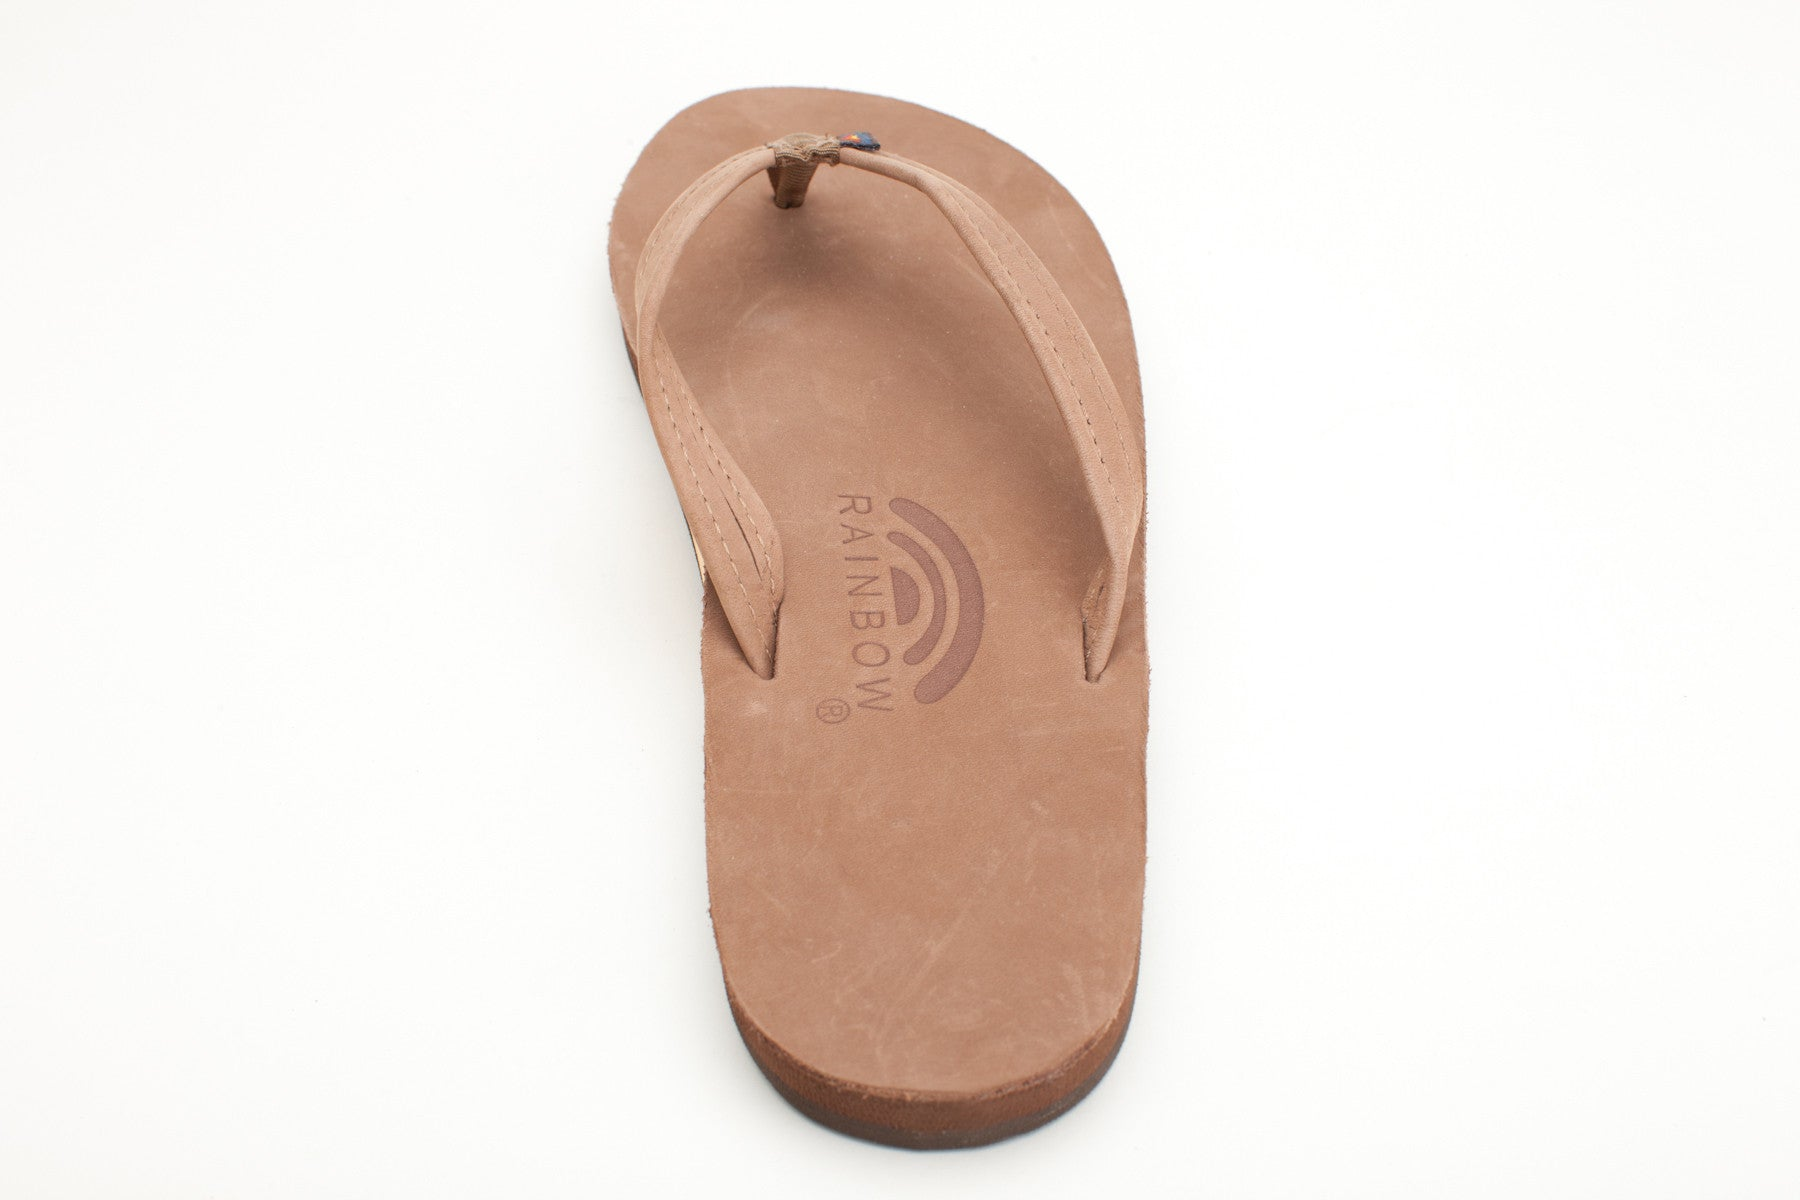 f59c8a8abf52 Rainbow Sandals Women s Dark Brown Premier Leather Single Layer with Arch  Support and a Narrow Strap